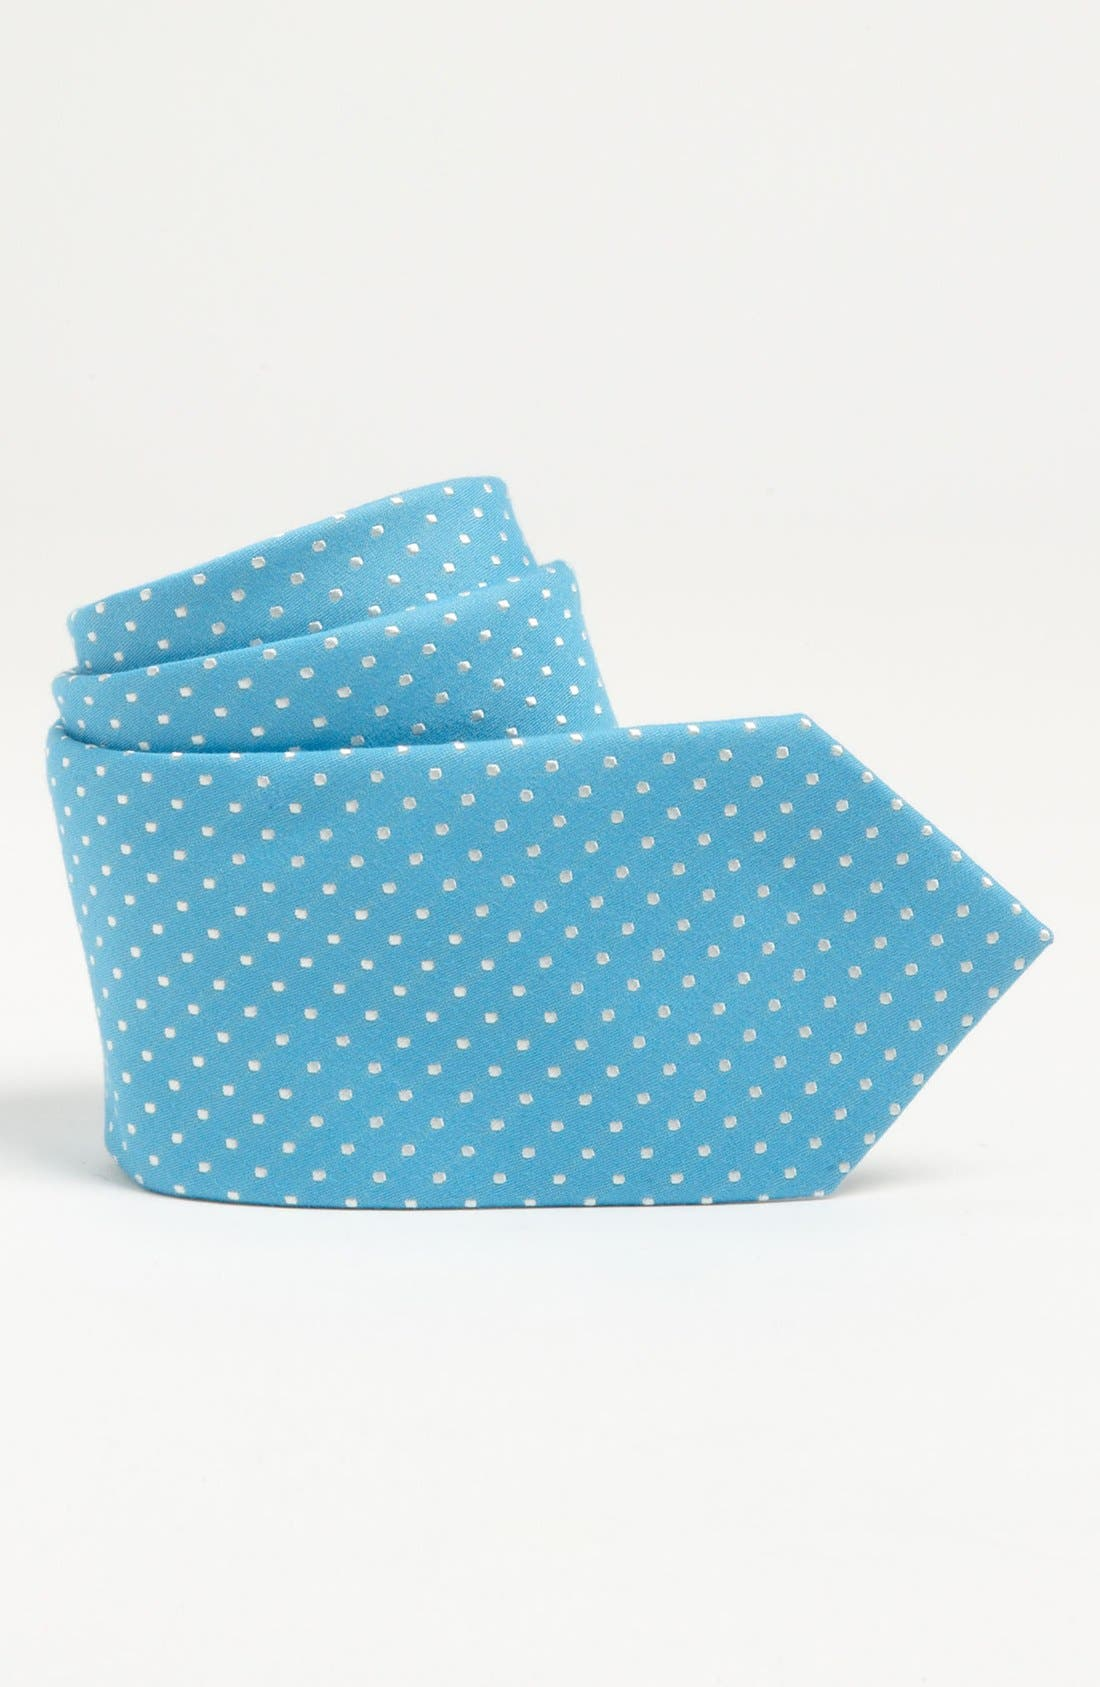 Main Image - Nordstrom Woven Silk Blend Tie (Big Boys)